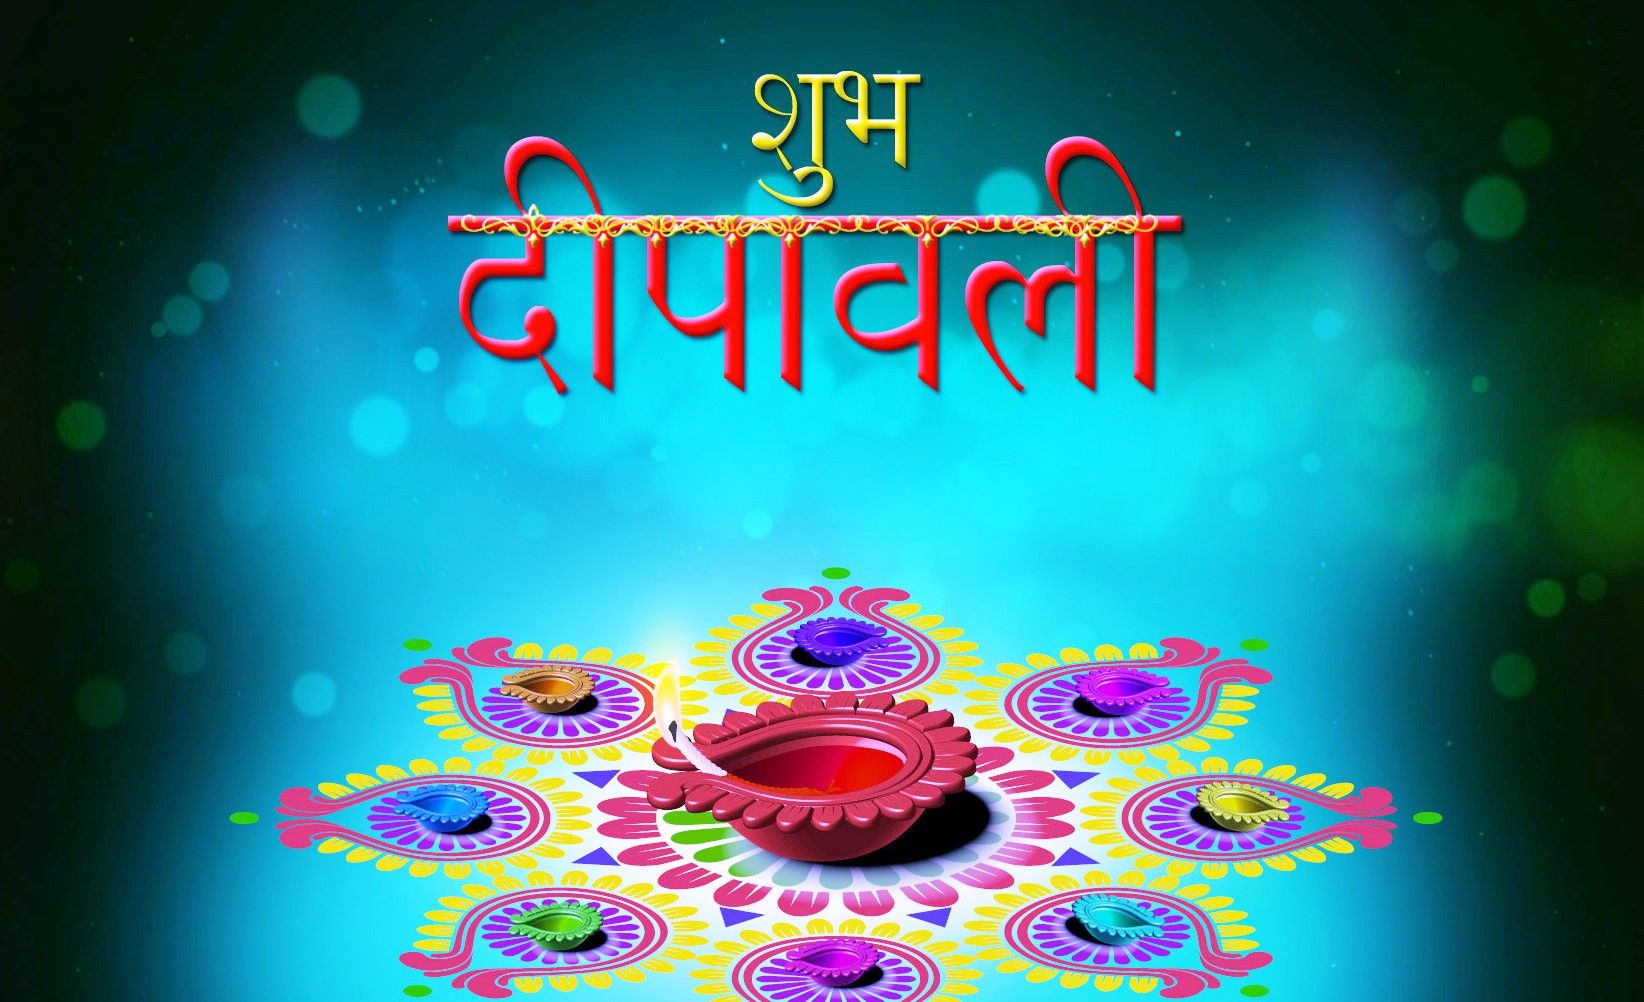 Happy Diwali Images For Whatsapp Dp Profile Wallpapers Download